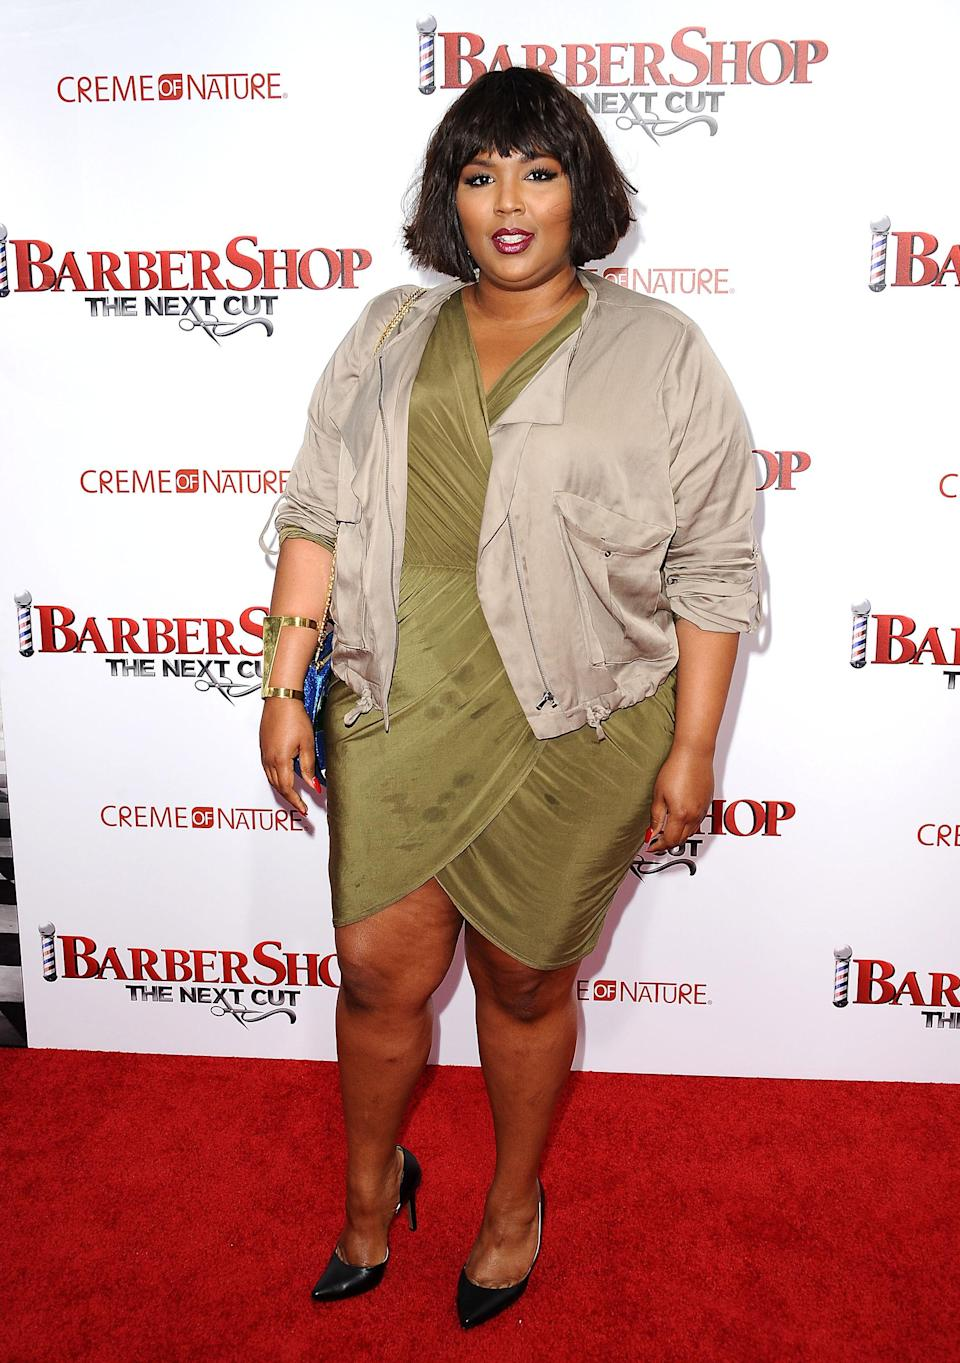 Before she favored floor-length wigs, Lizzo also dabbled with bobs.